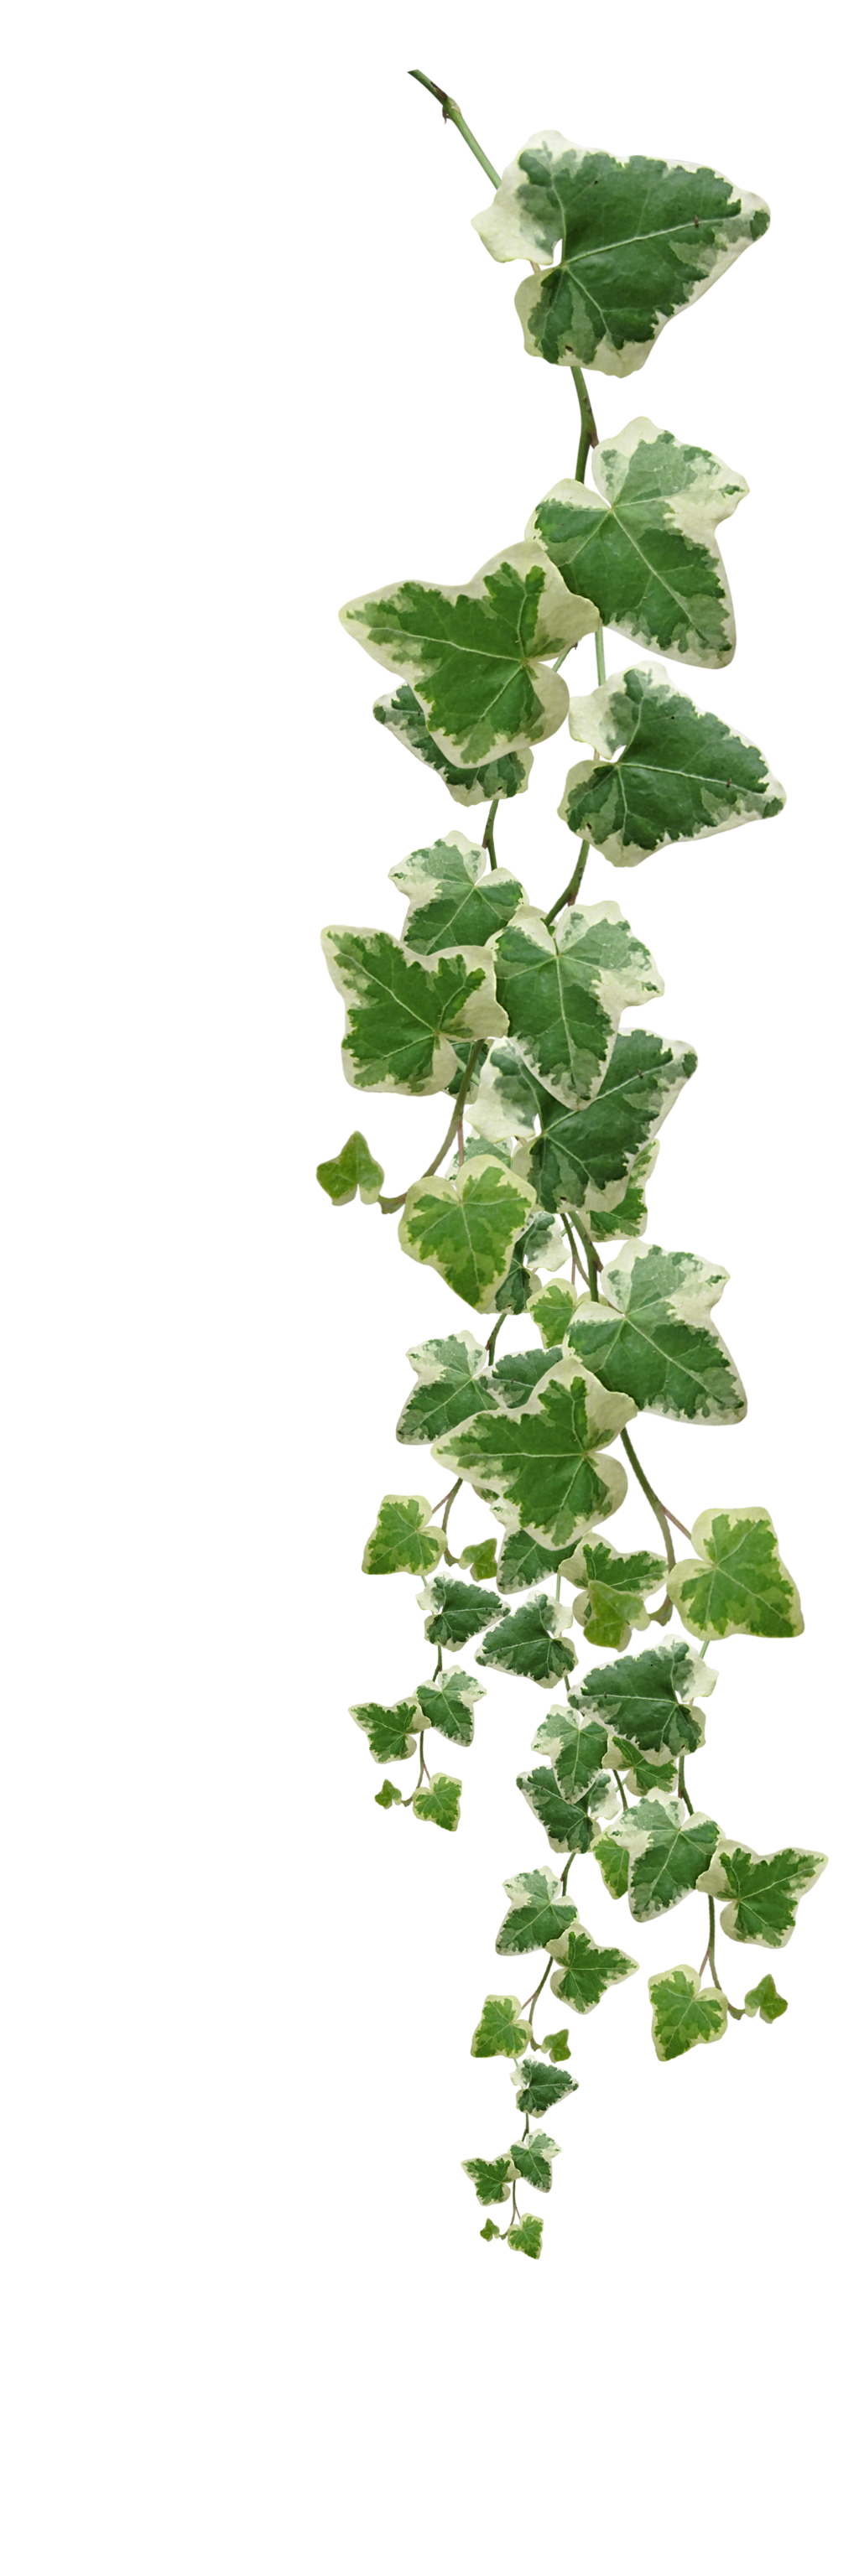 Vines Plants Png Pictures image #44922